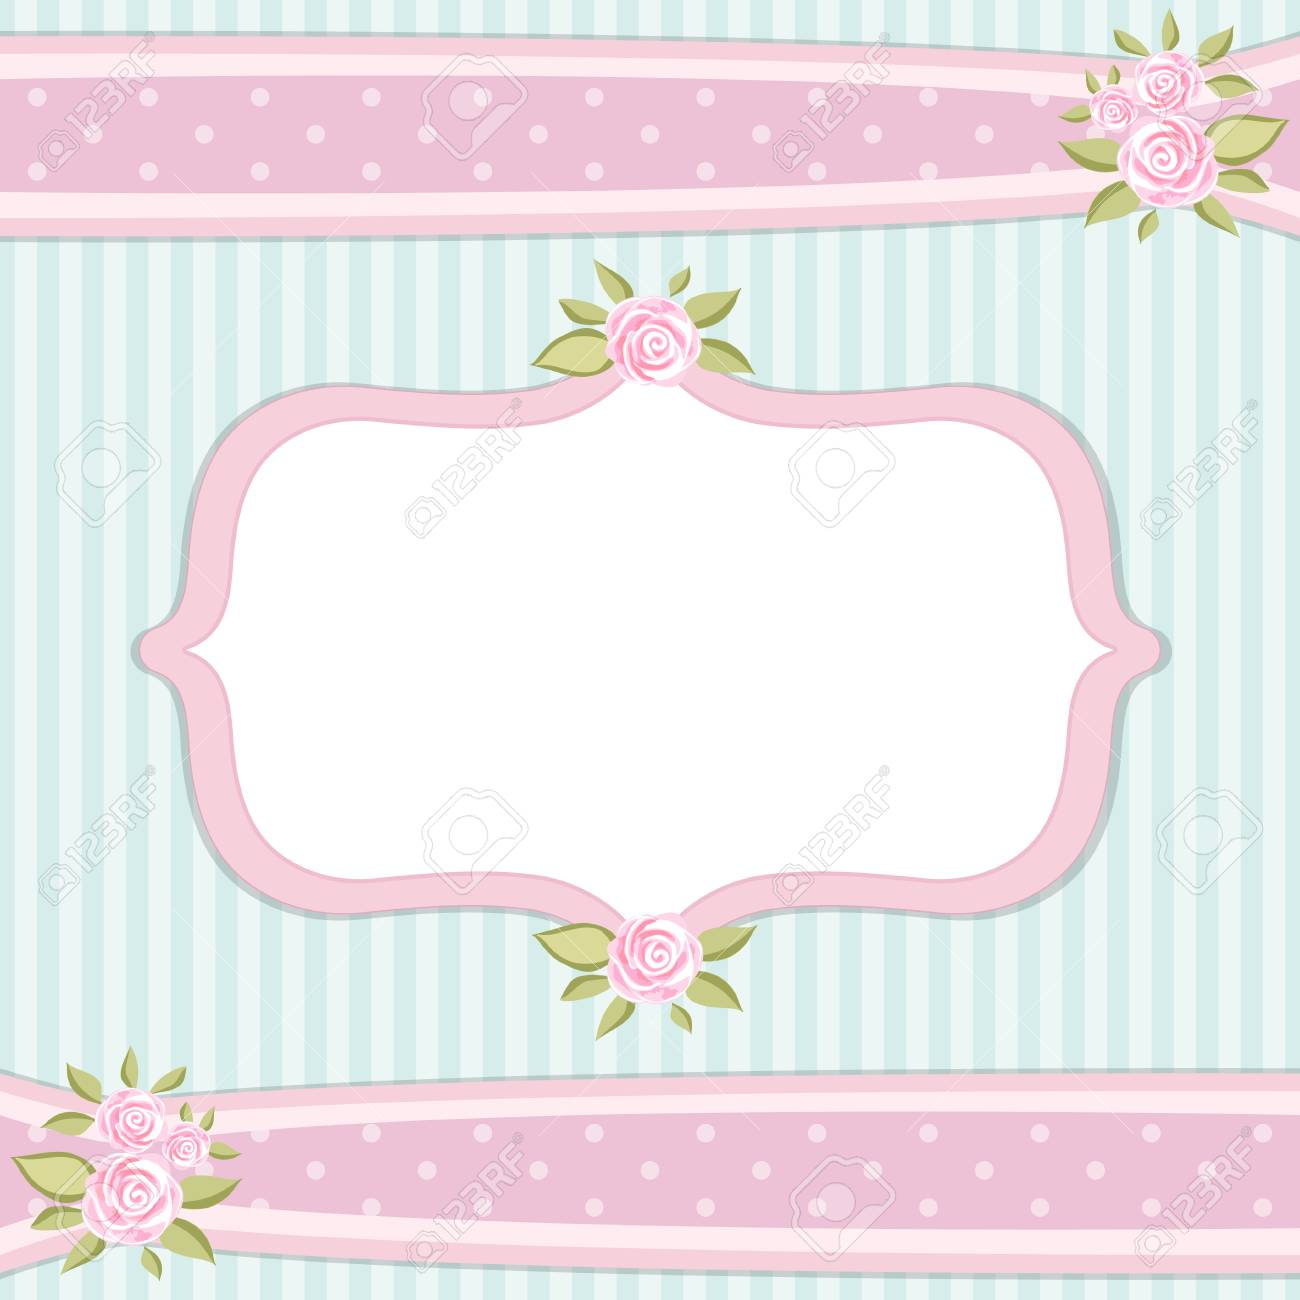 Retro Floral Frame With Roses In Shabby Chic Style Royalty Free